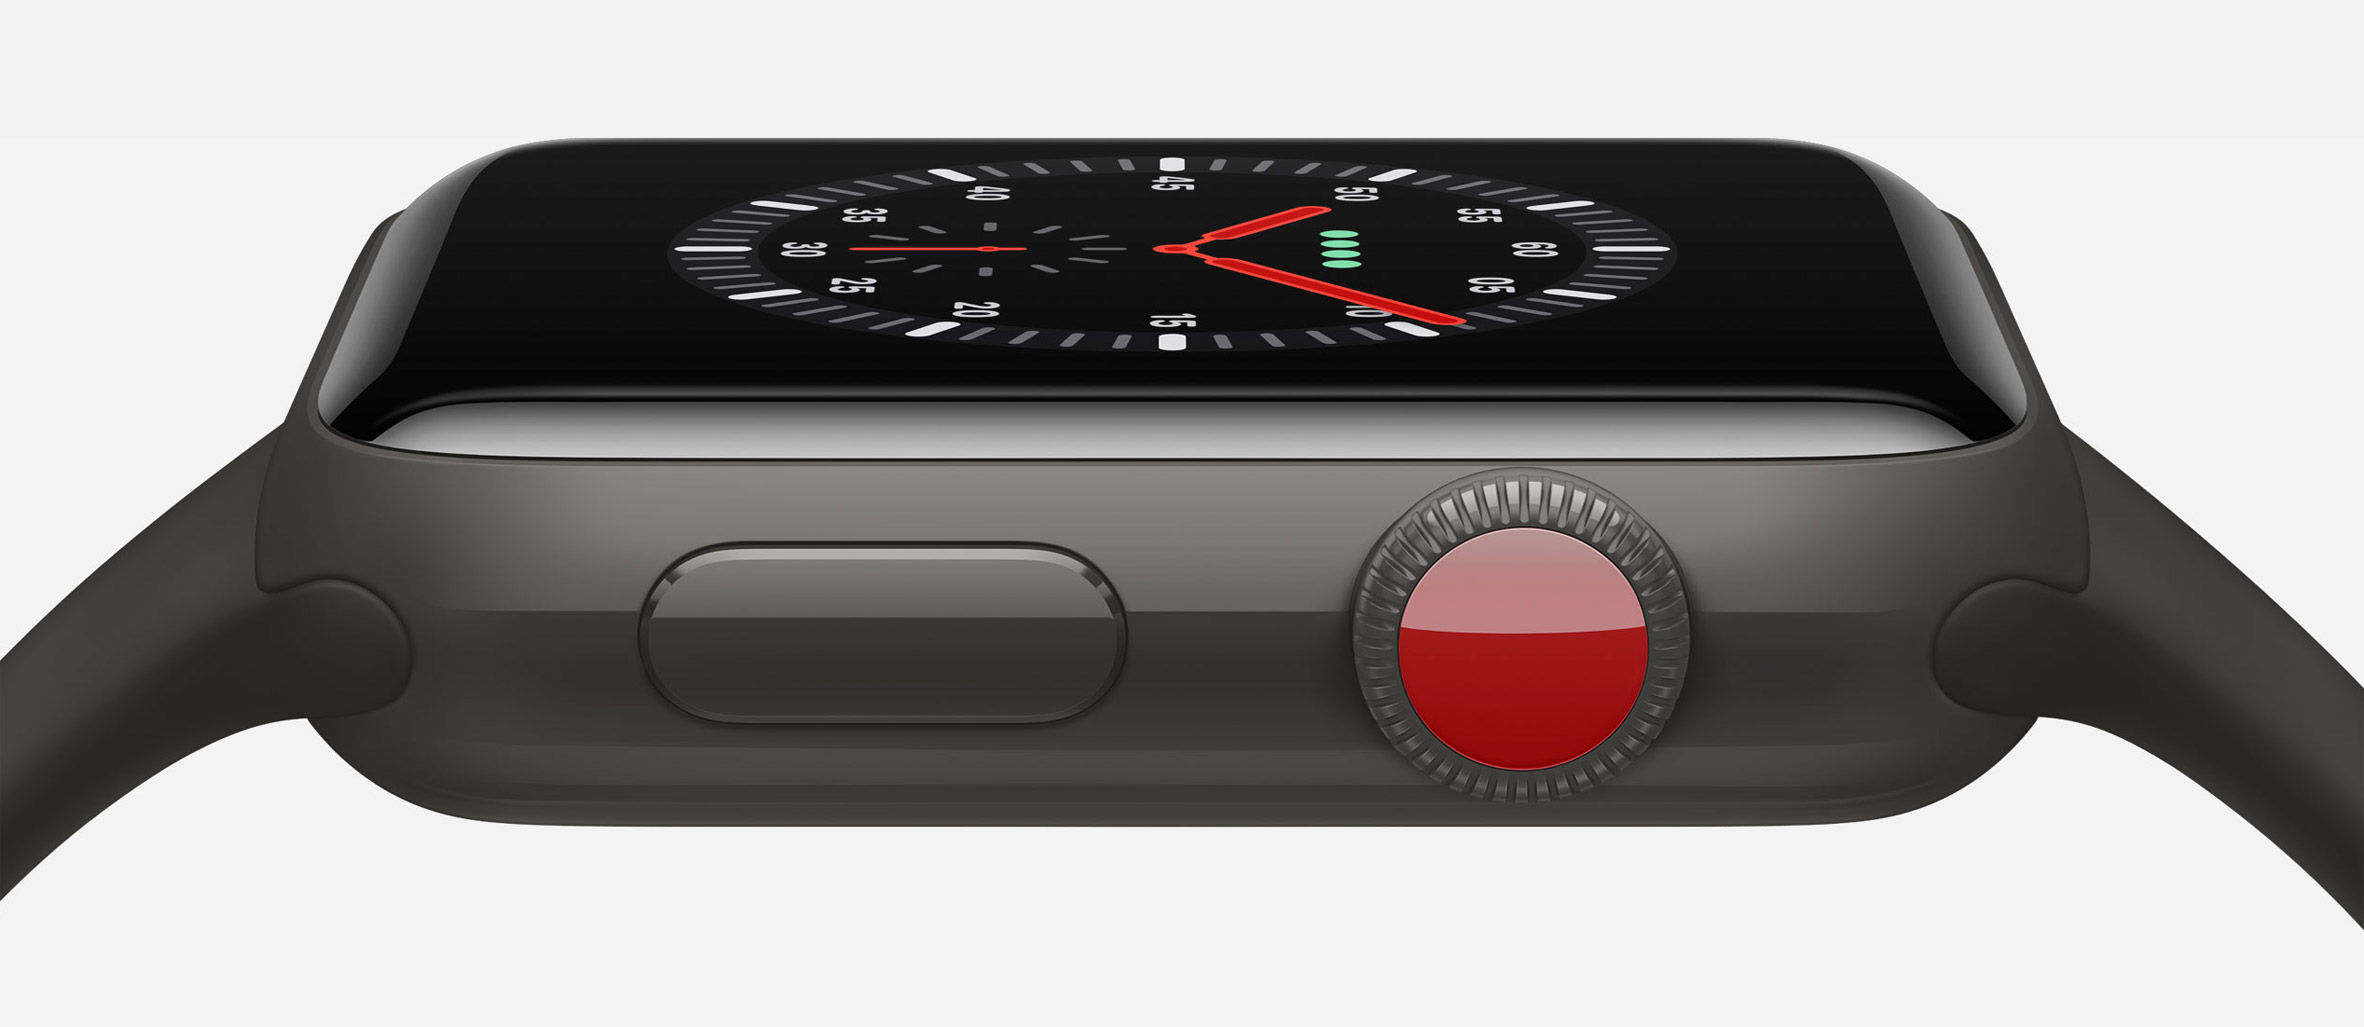 Apple Watch Series 3 includes built-in cellular service for receiving calls remotely